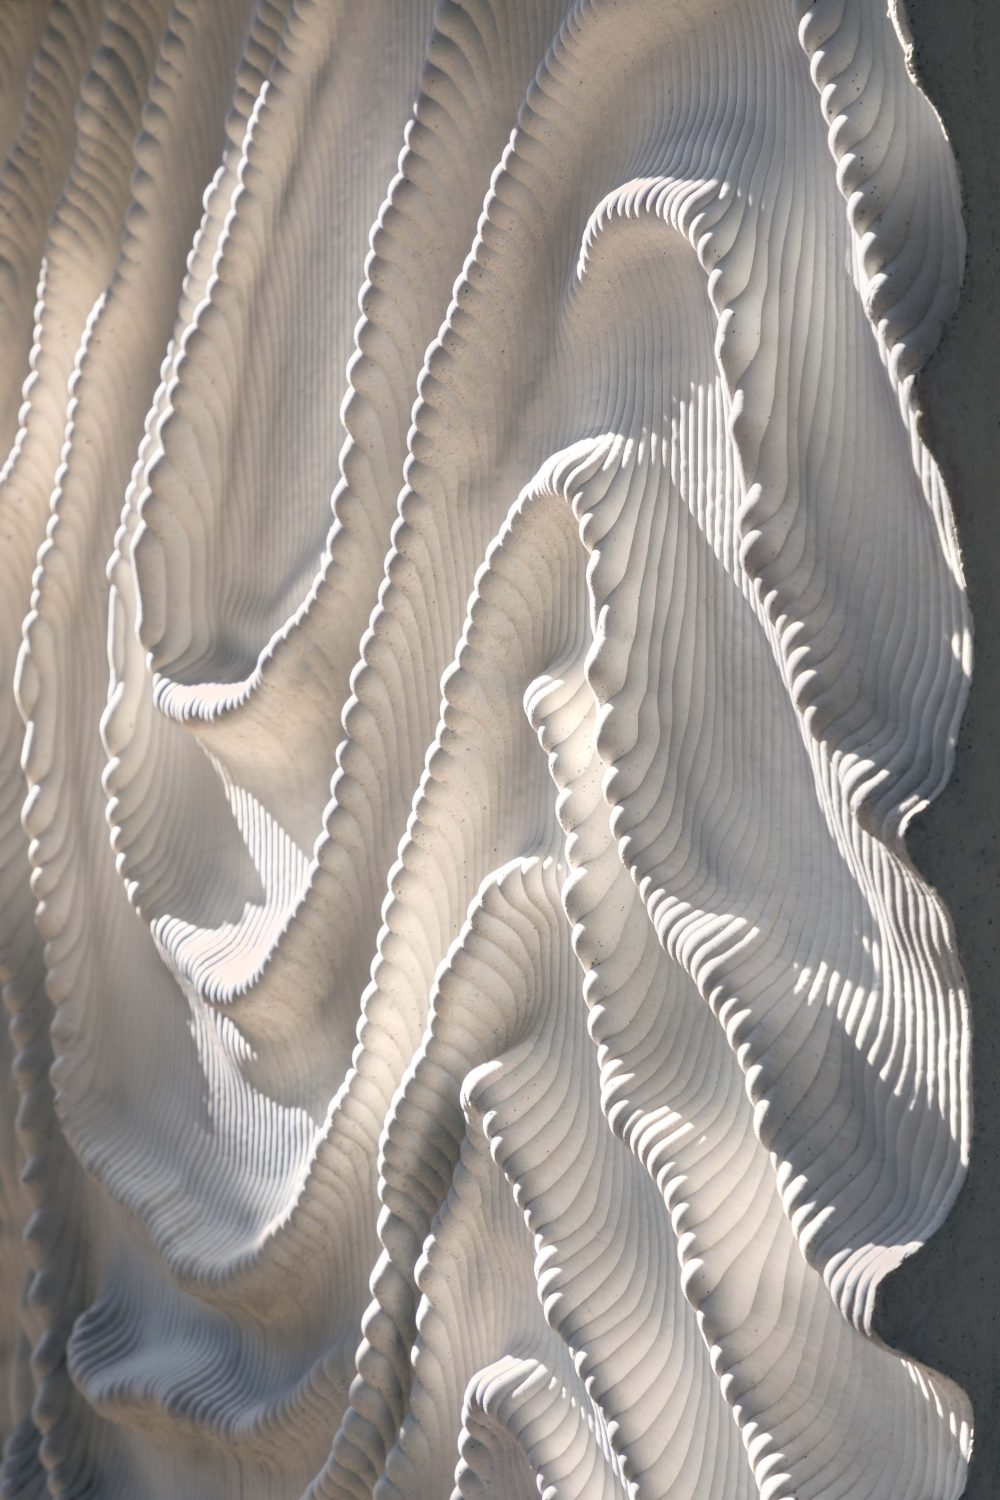 3432-2199-L-UV-DS-15-sculptural-relief-Iris-van-Herpen